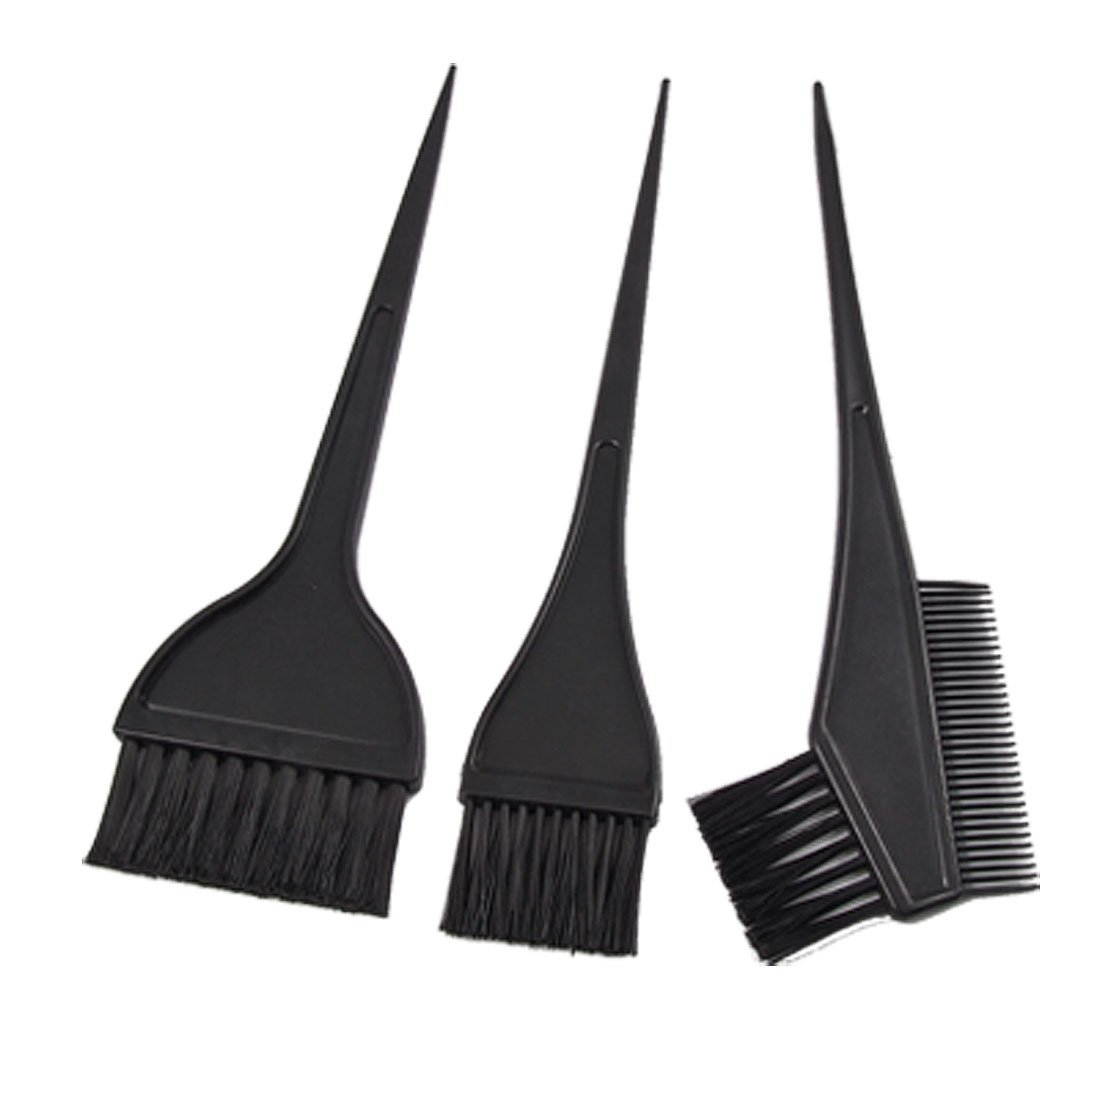 Black Plastic Handle Hair Color Tint Dye Perm Brush Comb US-SA-AJD-338002